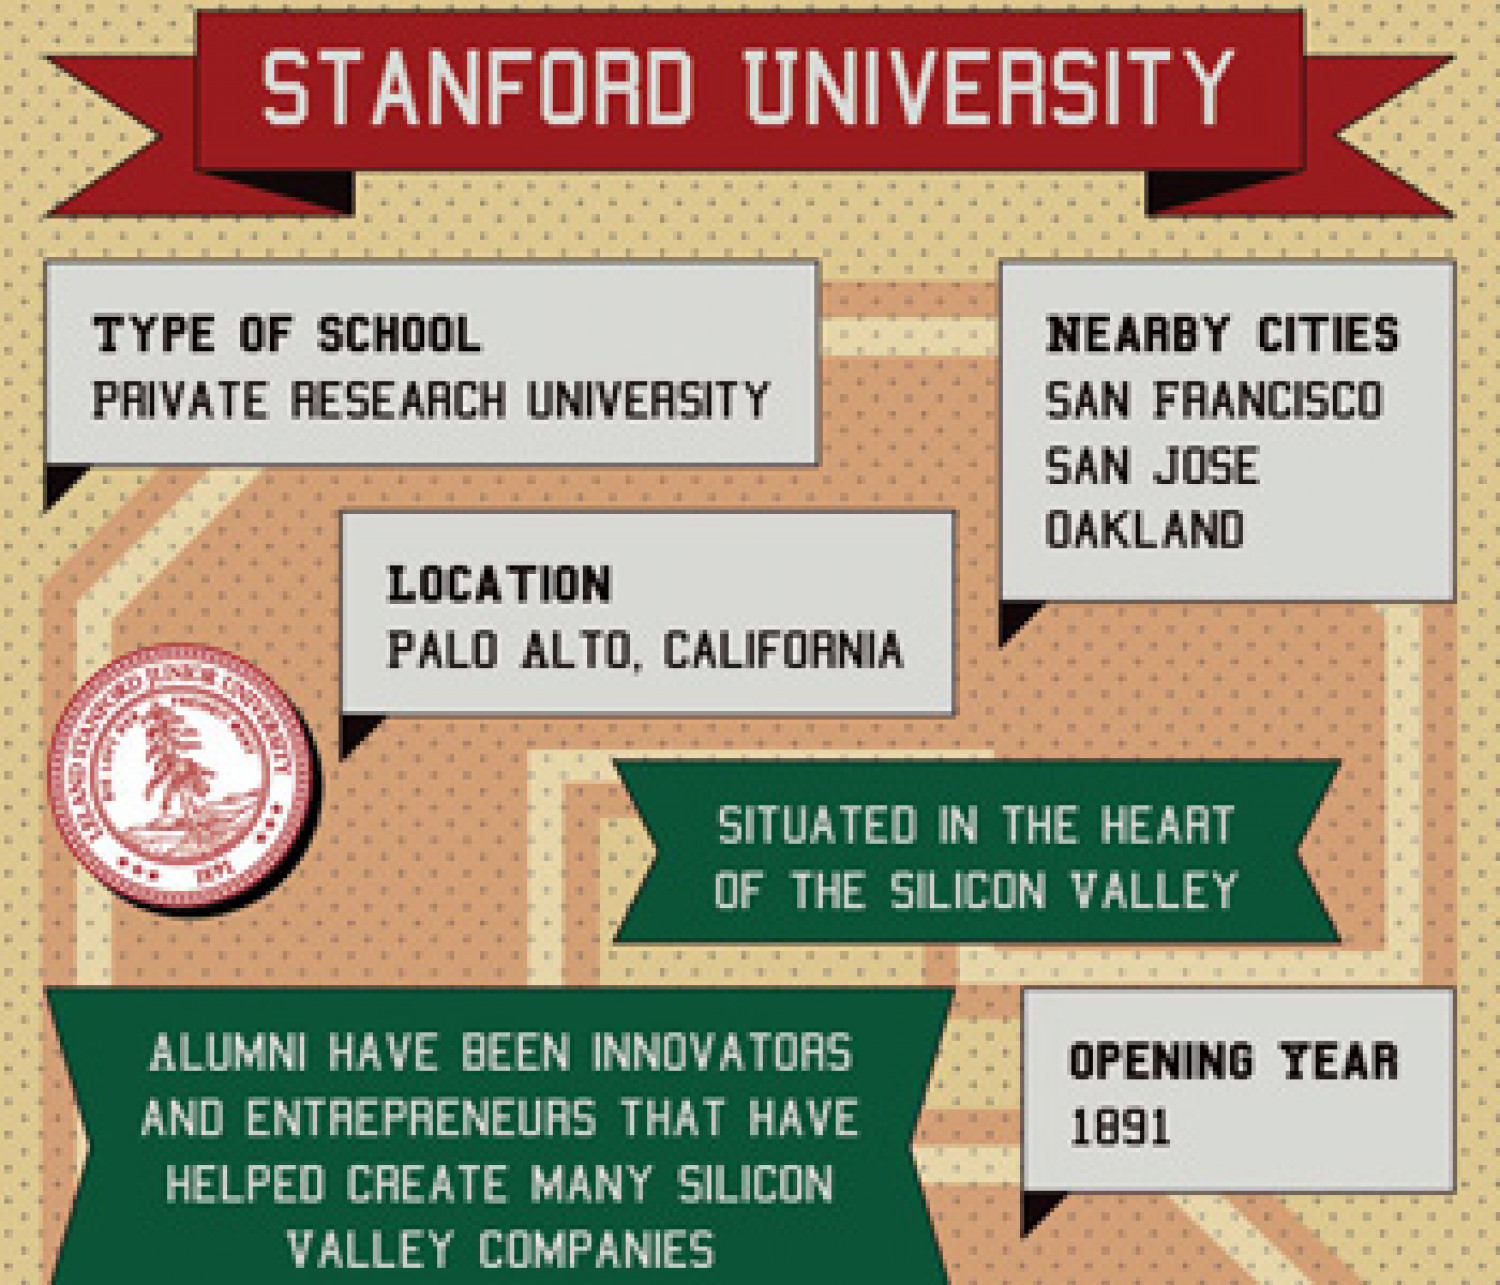 Stanford University Infographic Infographic